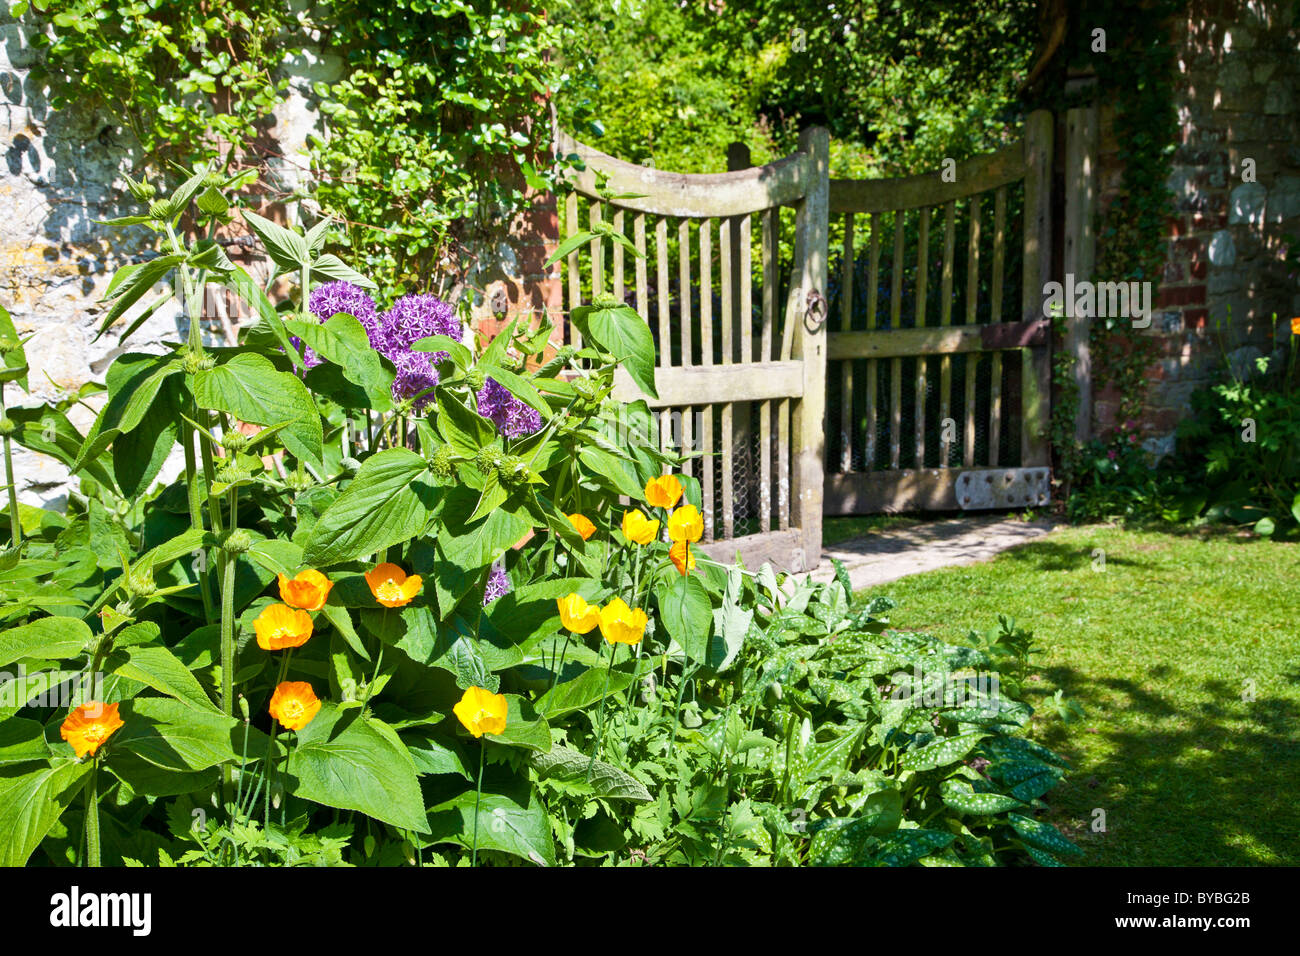 An Open Wooden Garden Gate In English Country Summer With Californian Poppies And Purple Allium The Foreground